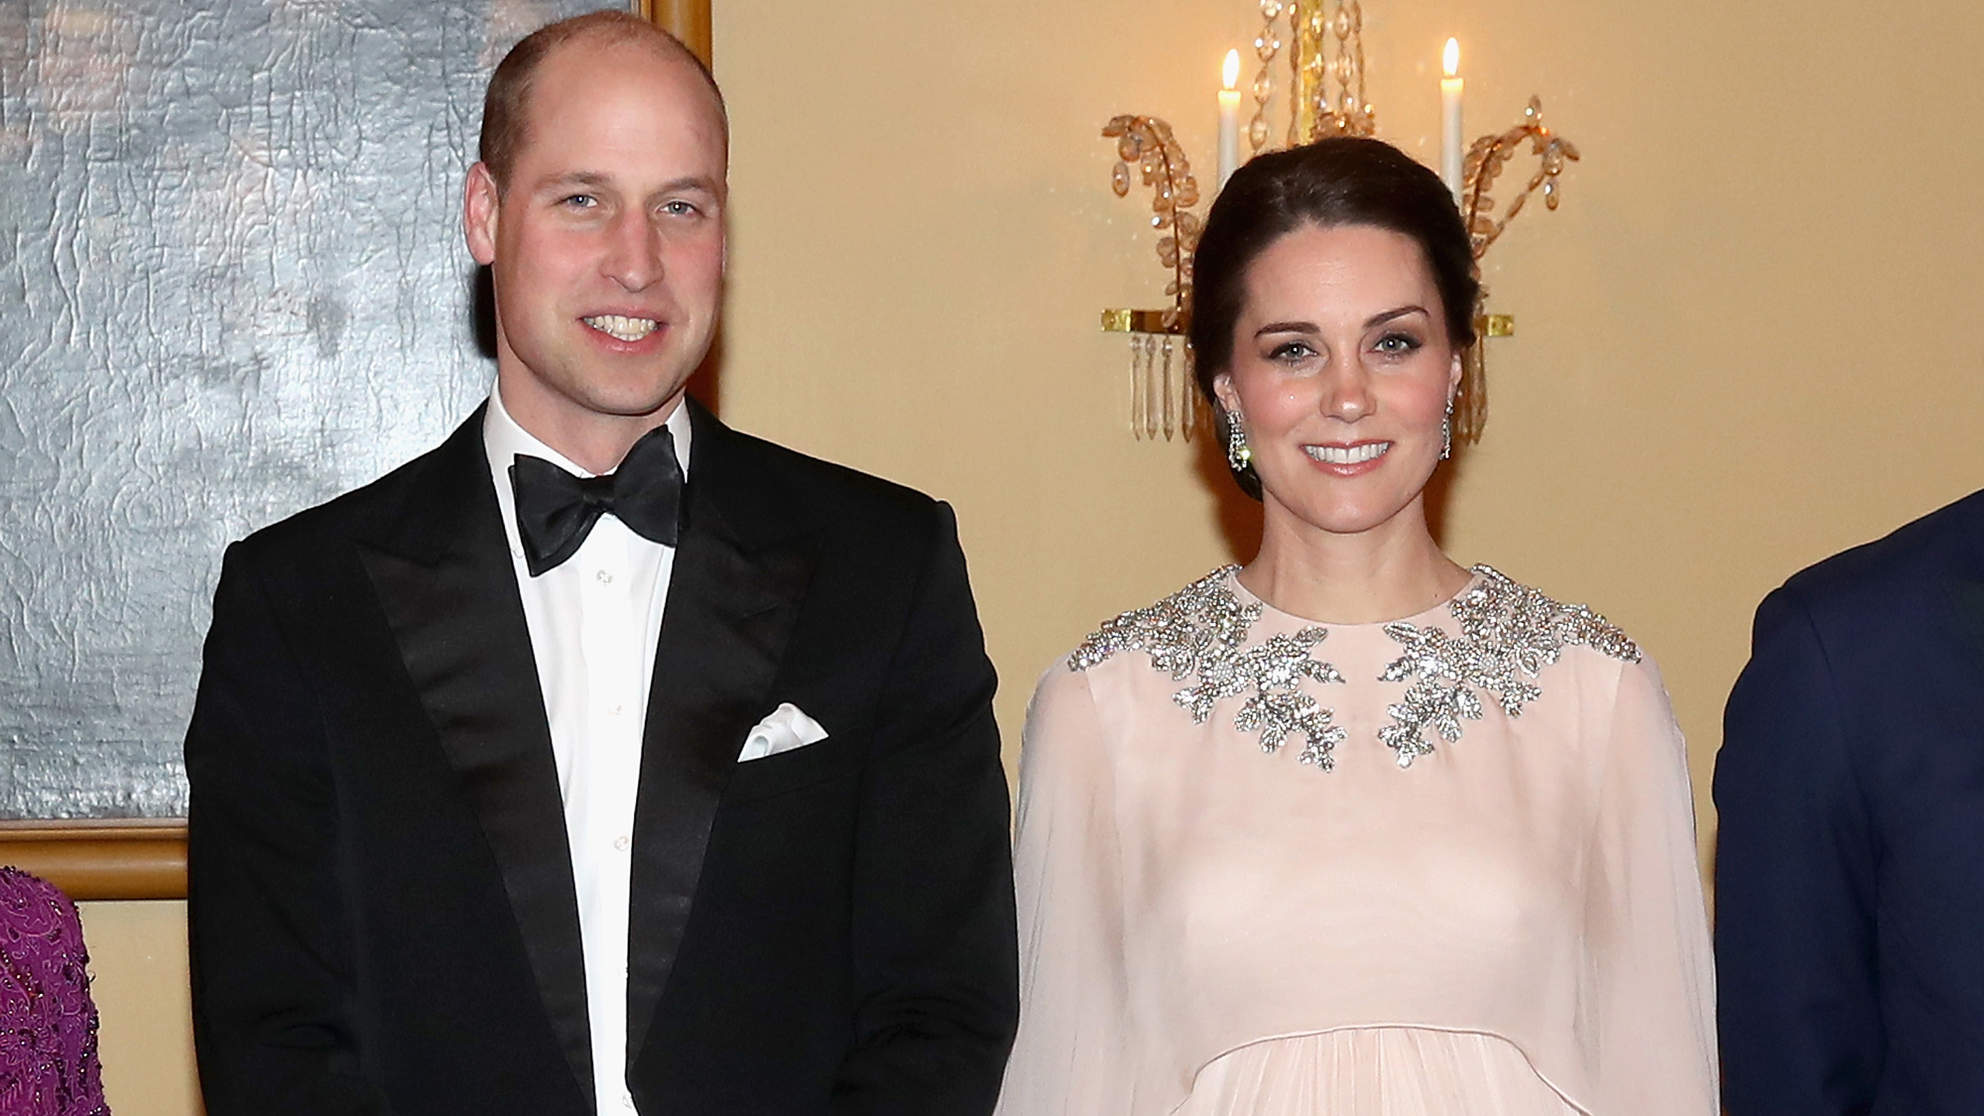 Pregnant Kate Middleton Continues Her Style Risk Win Streak—This Time with a Cape